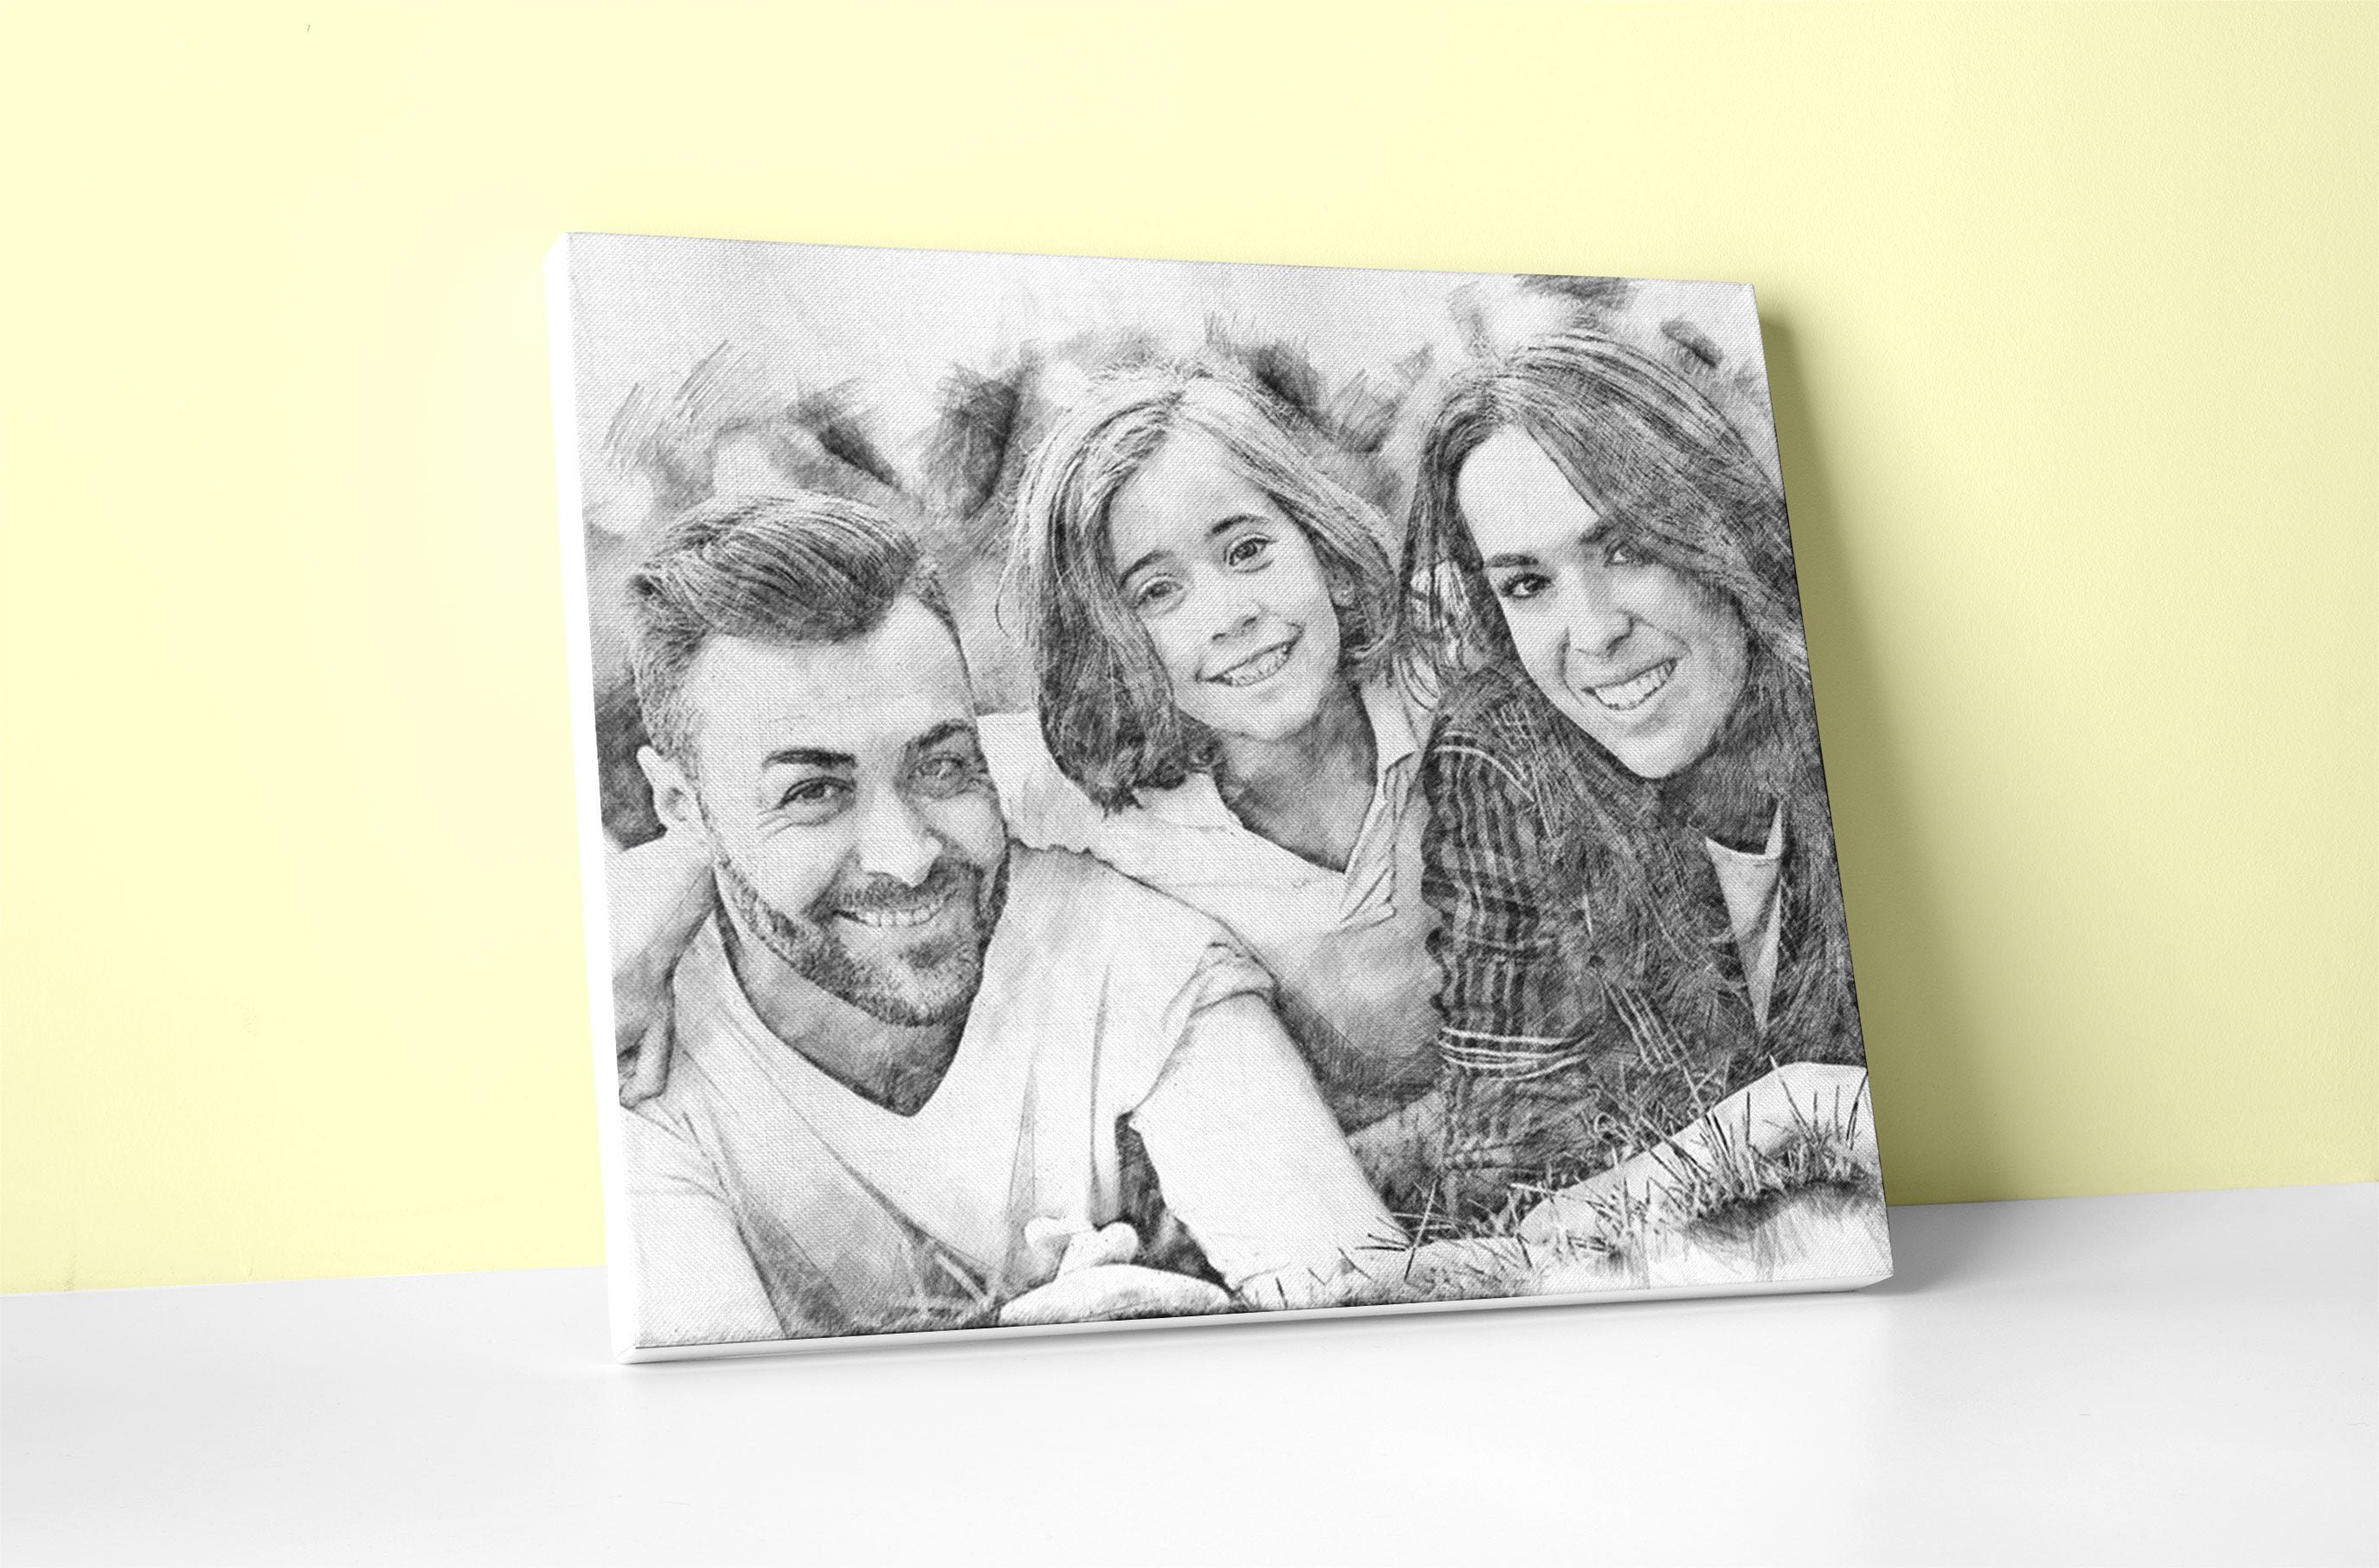 Black and white pencil sketch art portrait with borderless wooden frame